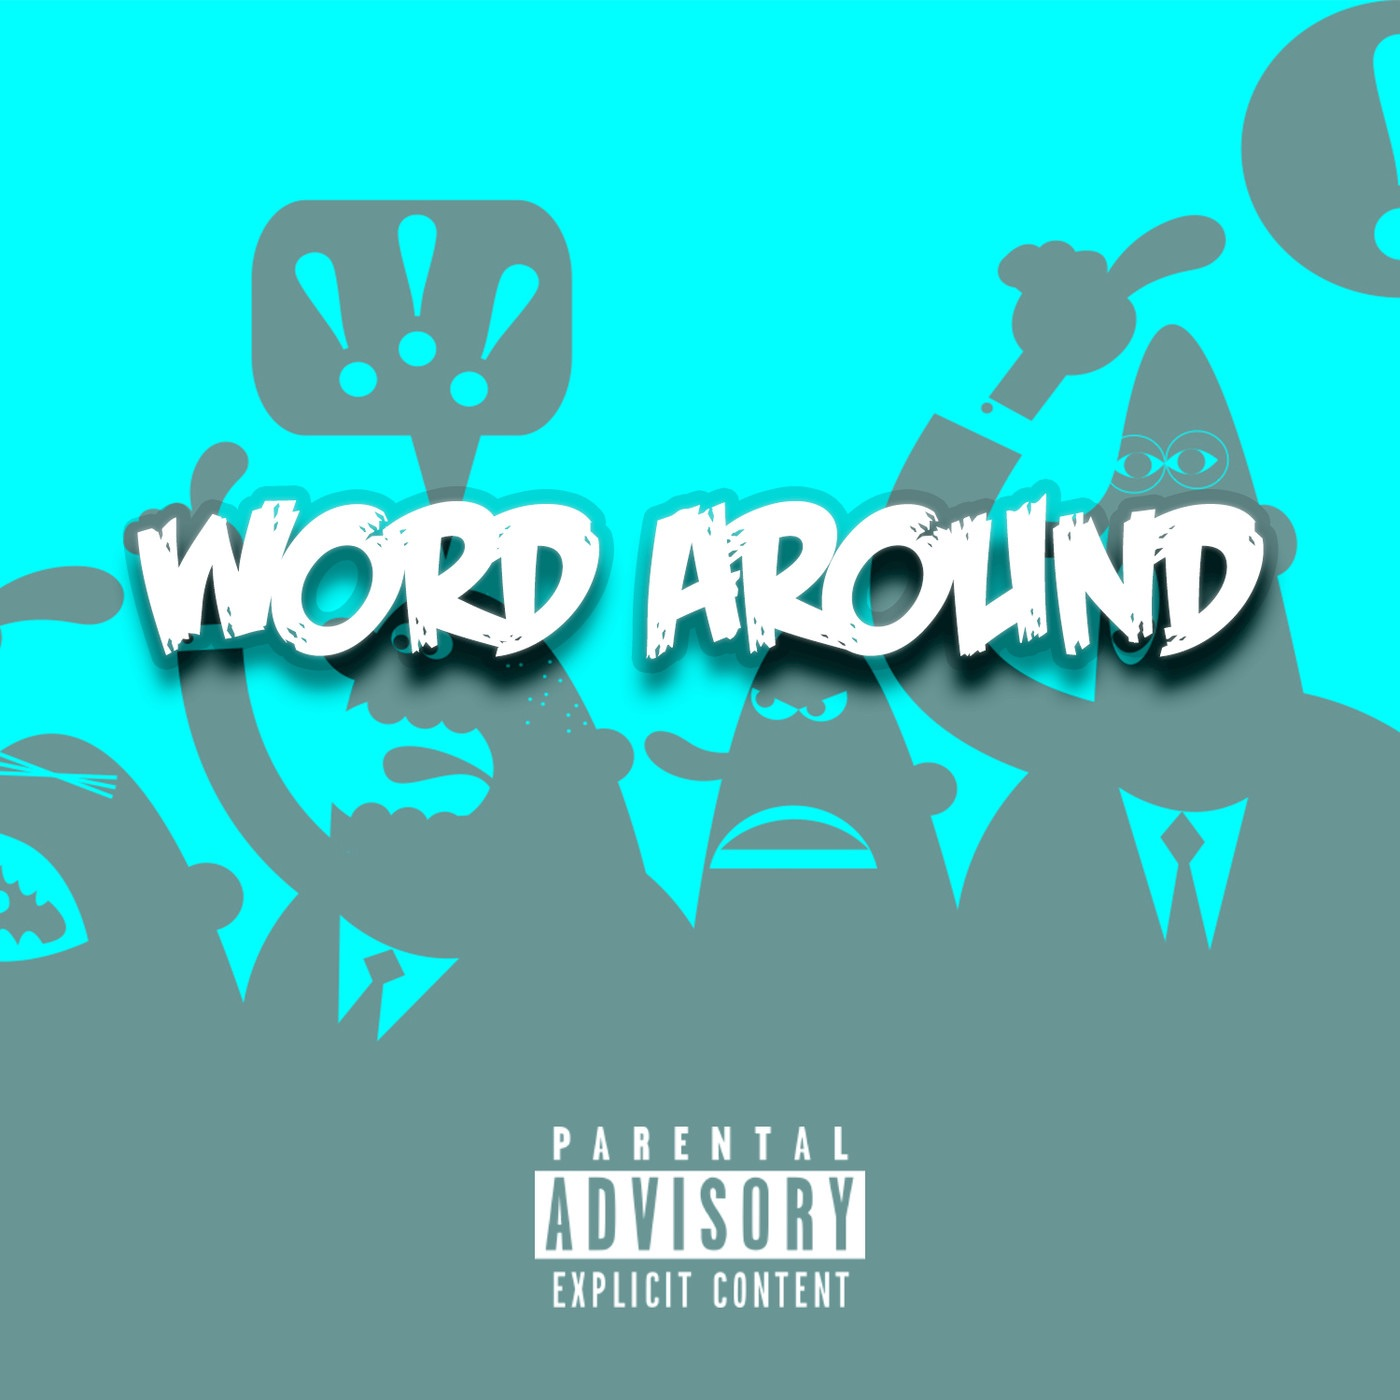 MP3 Songs Online:♫ Word Around (feat. Vada Mane) - A-cee album Word Around (feat. Vada Mane) - Single. Alternative,Music listen to music online free without downloading.